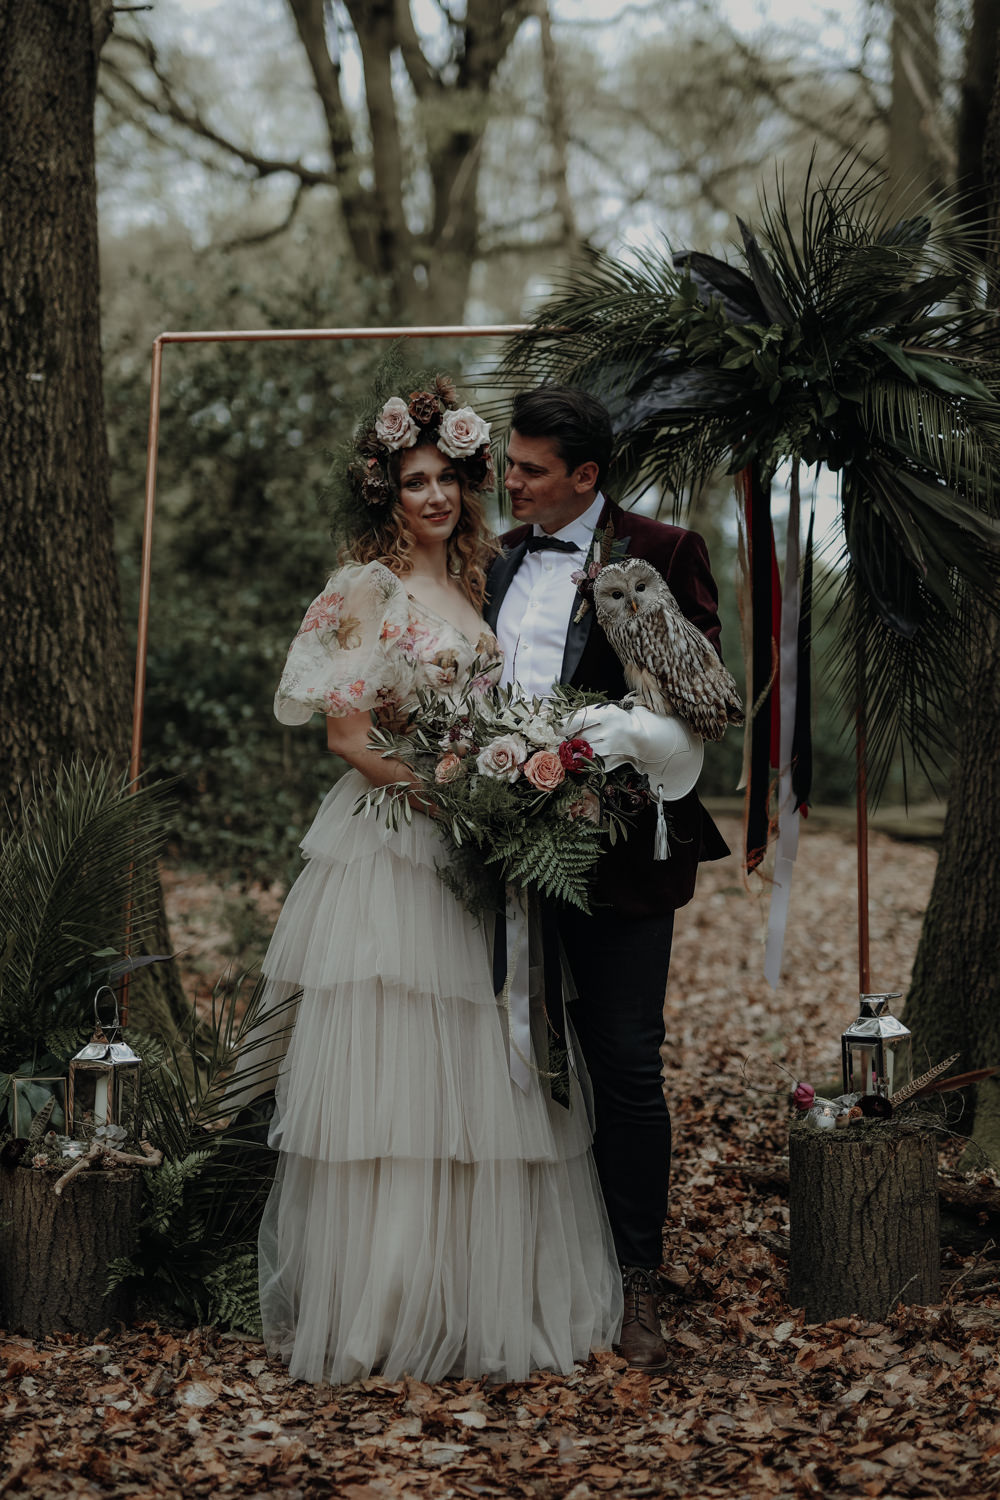 Modern Gothic Wedding Ideas in the Woods